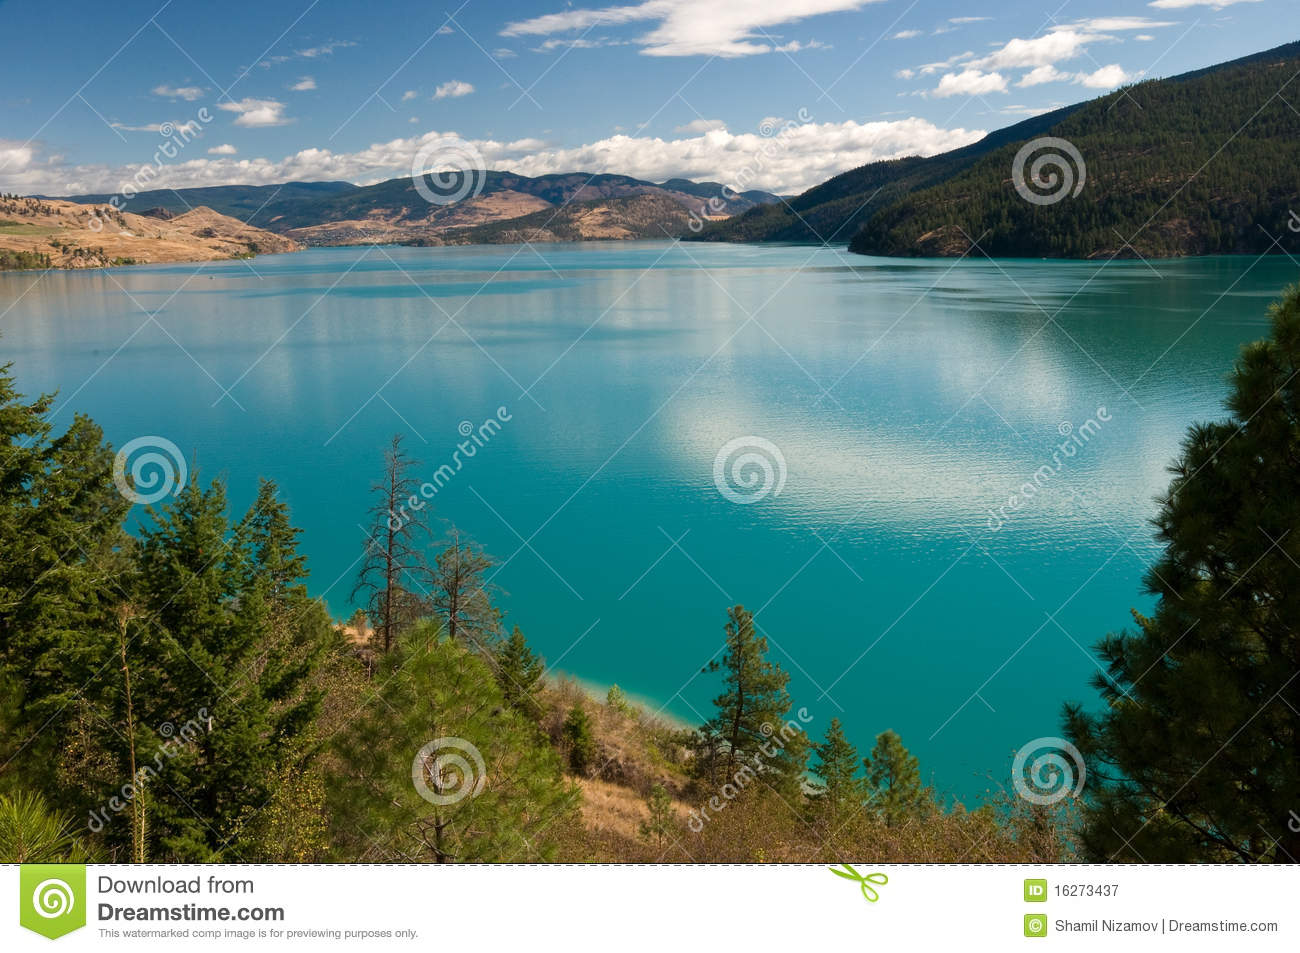 Kalamalka Lake, Okanagan, BC, Canada Royalty Free Stock